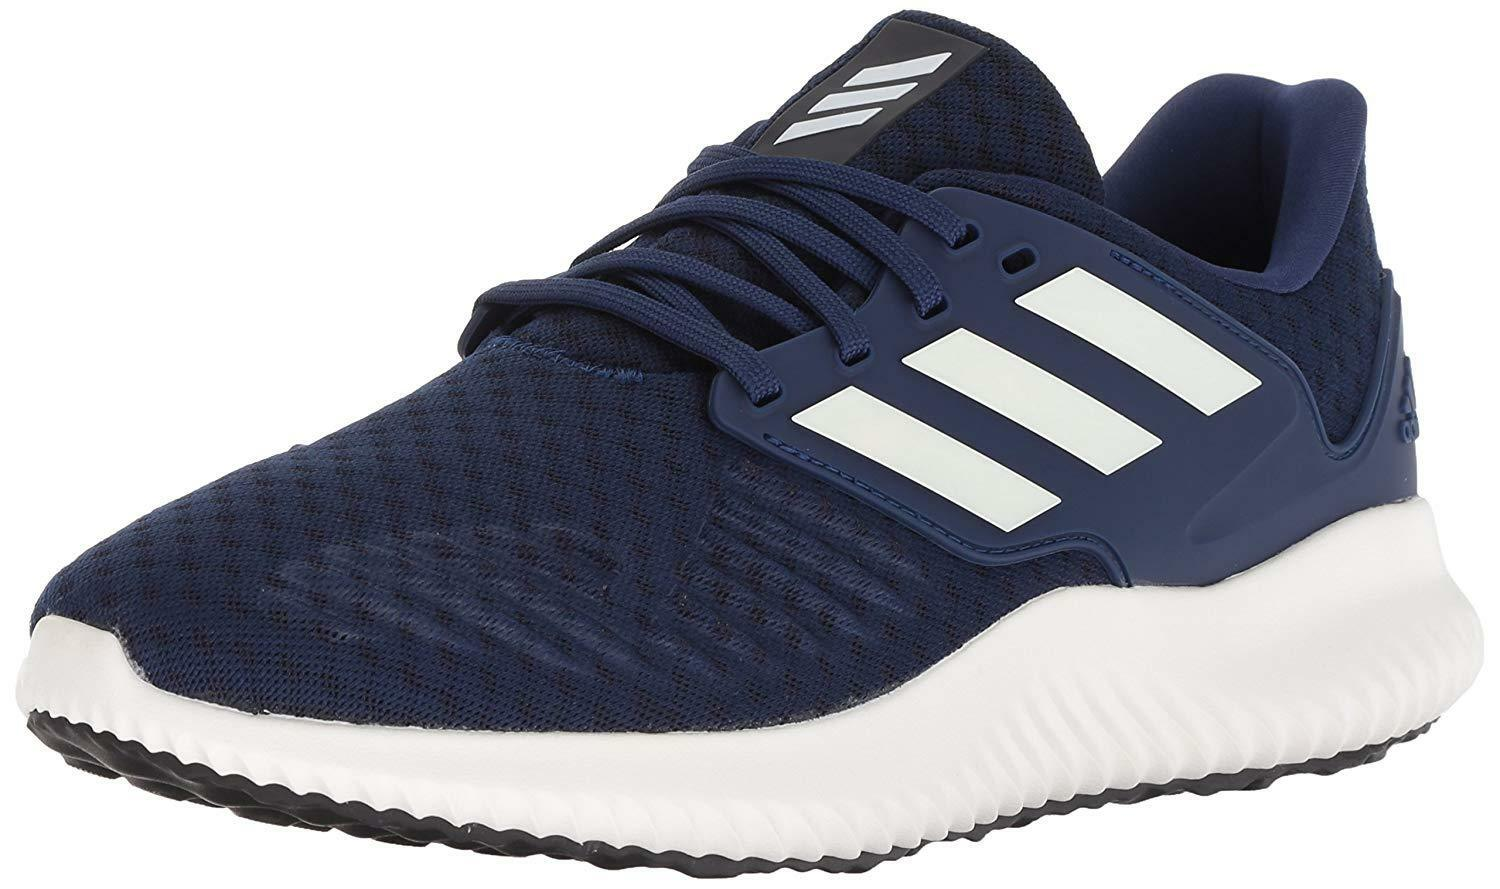 aab8e2536 Adidas Originals Rc.2 Running shoes Alphabounce Men's nshcjg3045-new ...